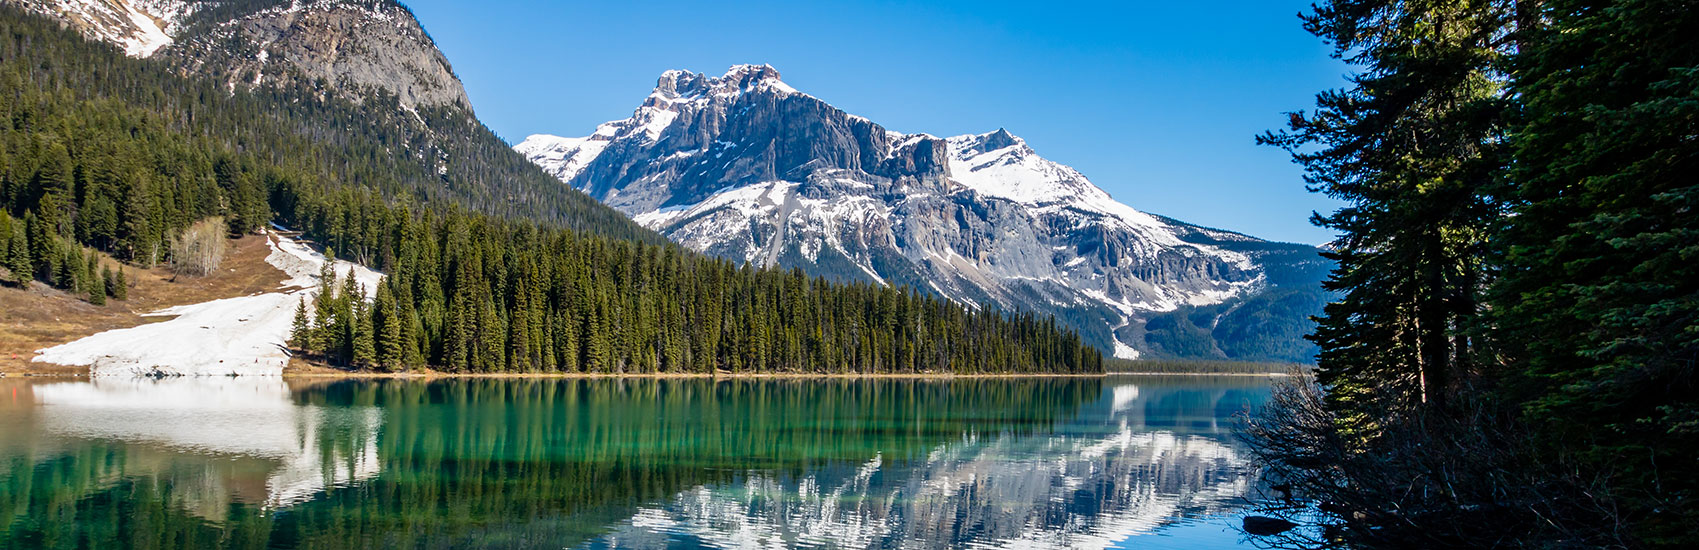 Exclusive Western Canada's Rockies, Lakes & Wine Country Tour 3